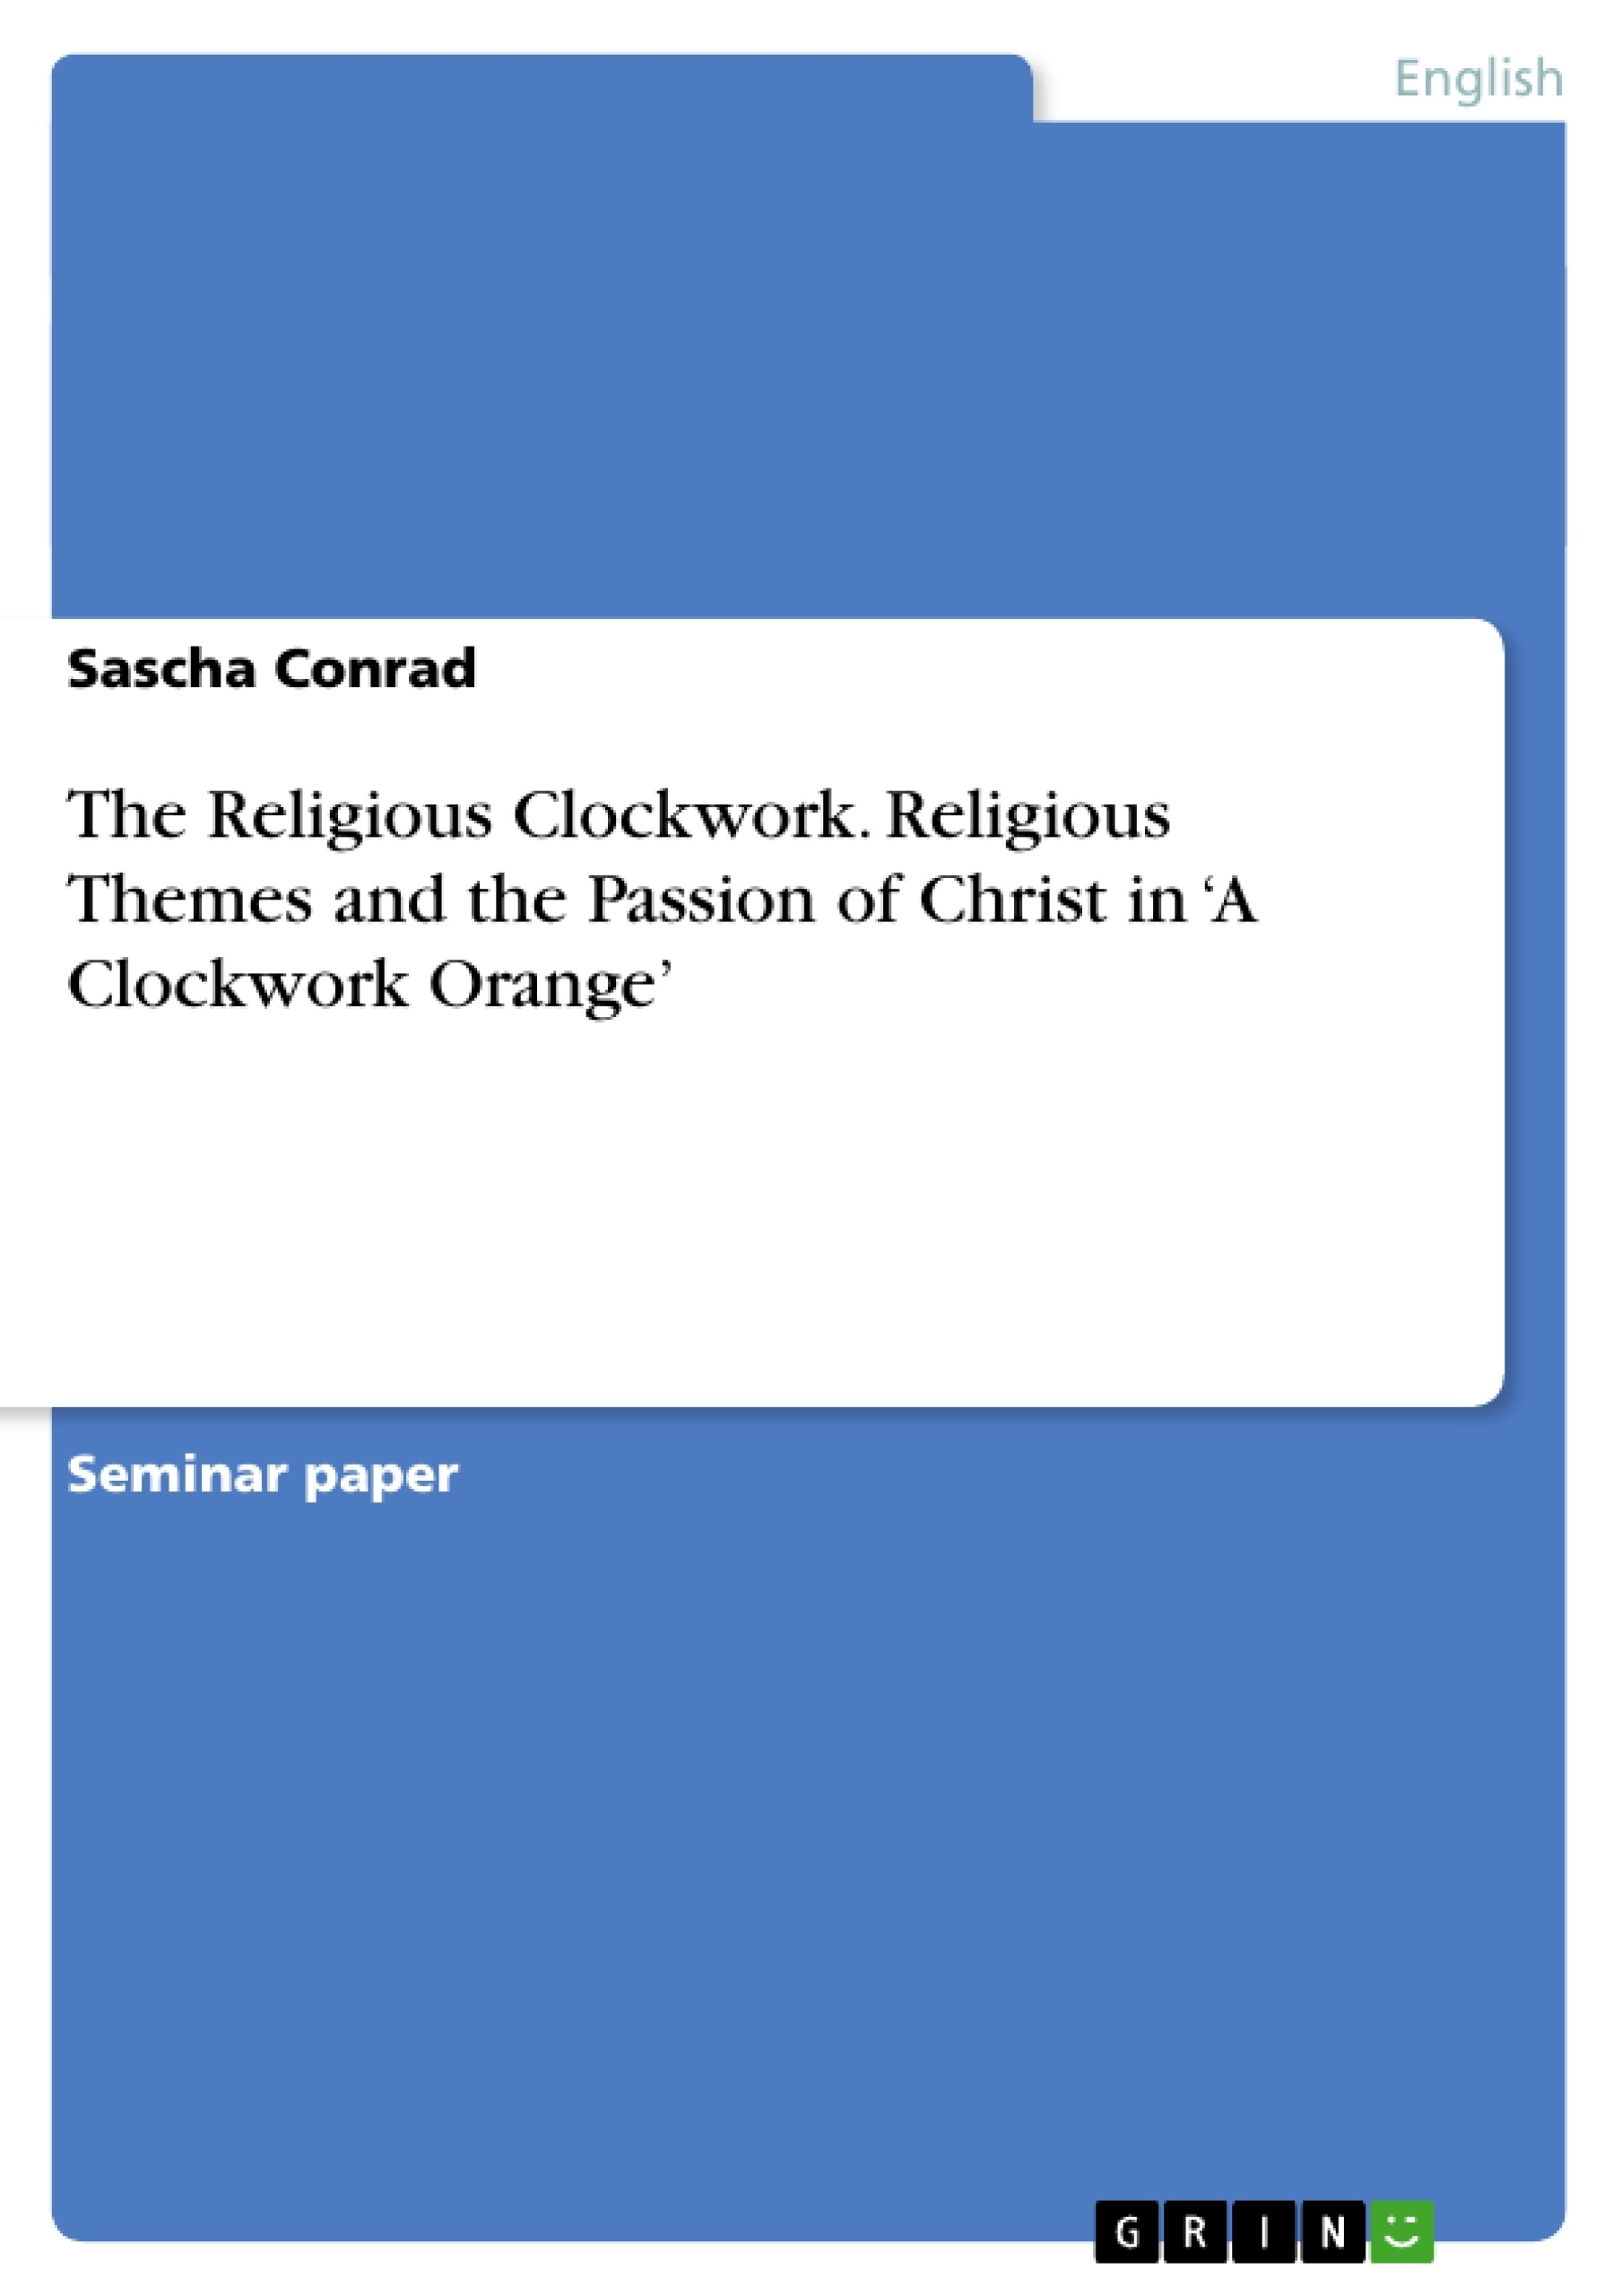 Title: The Religious Clockwork. Religious Themes and the Passion of Christ in 'A Clockwork Orange'